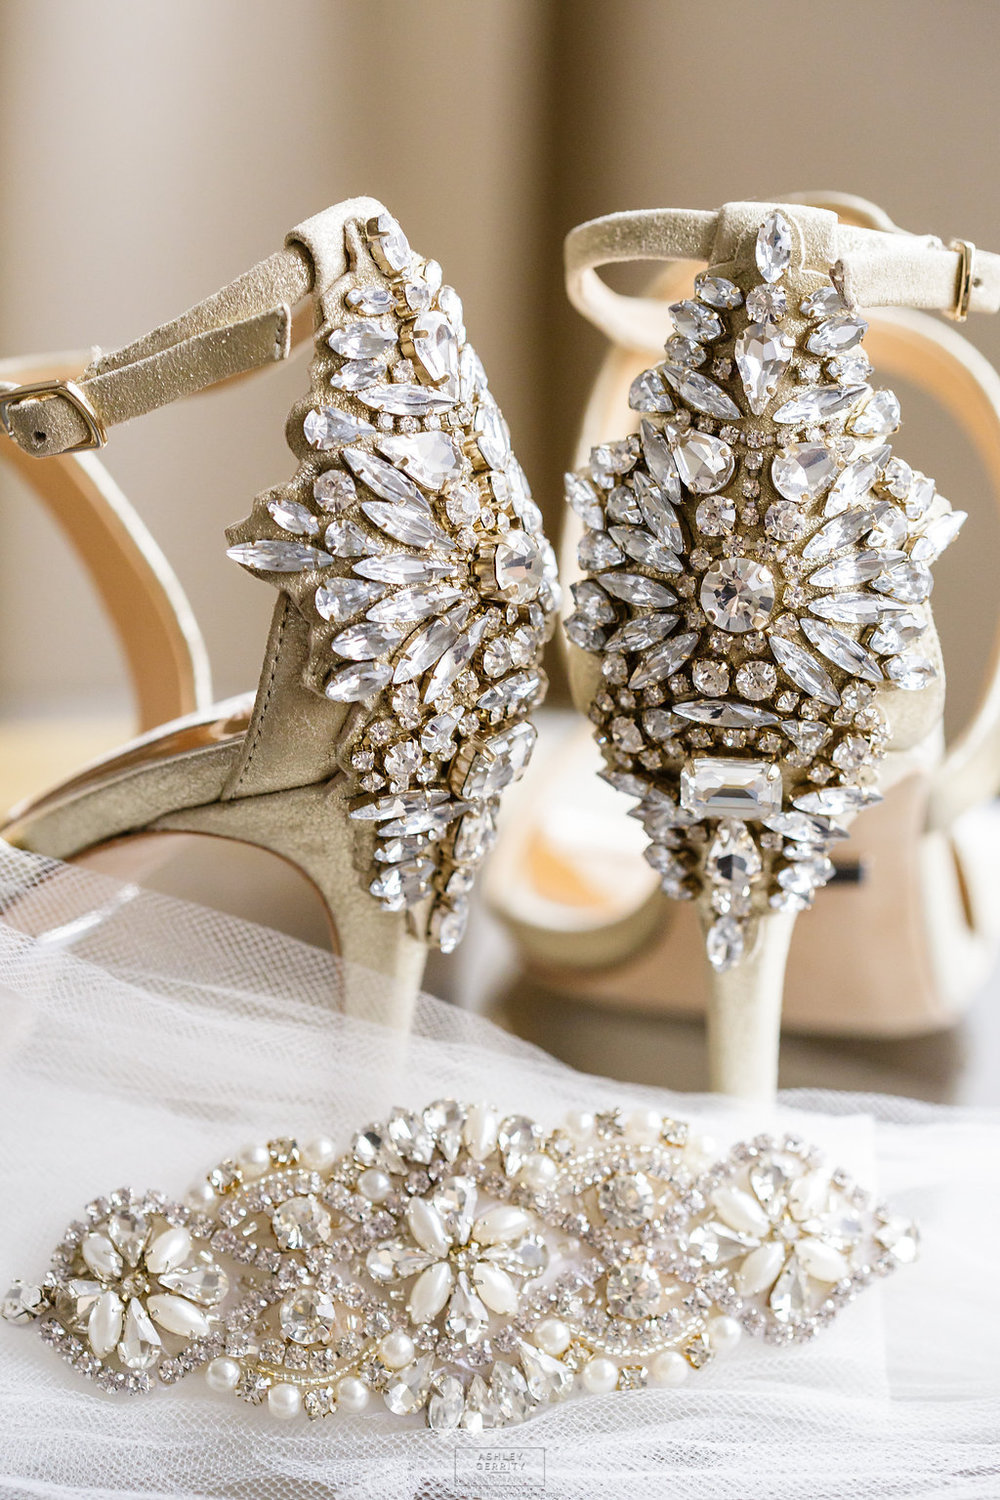 10 Philadelphia Wedding Intimate Wedding Rittenhouse Wedding Shoes Details.jpg